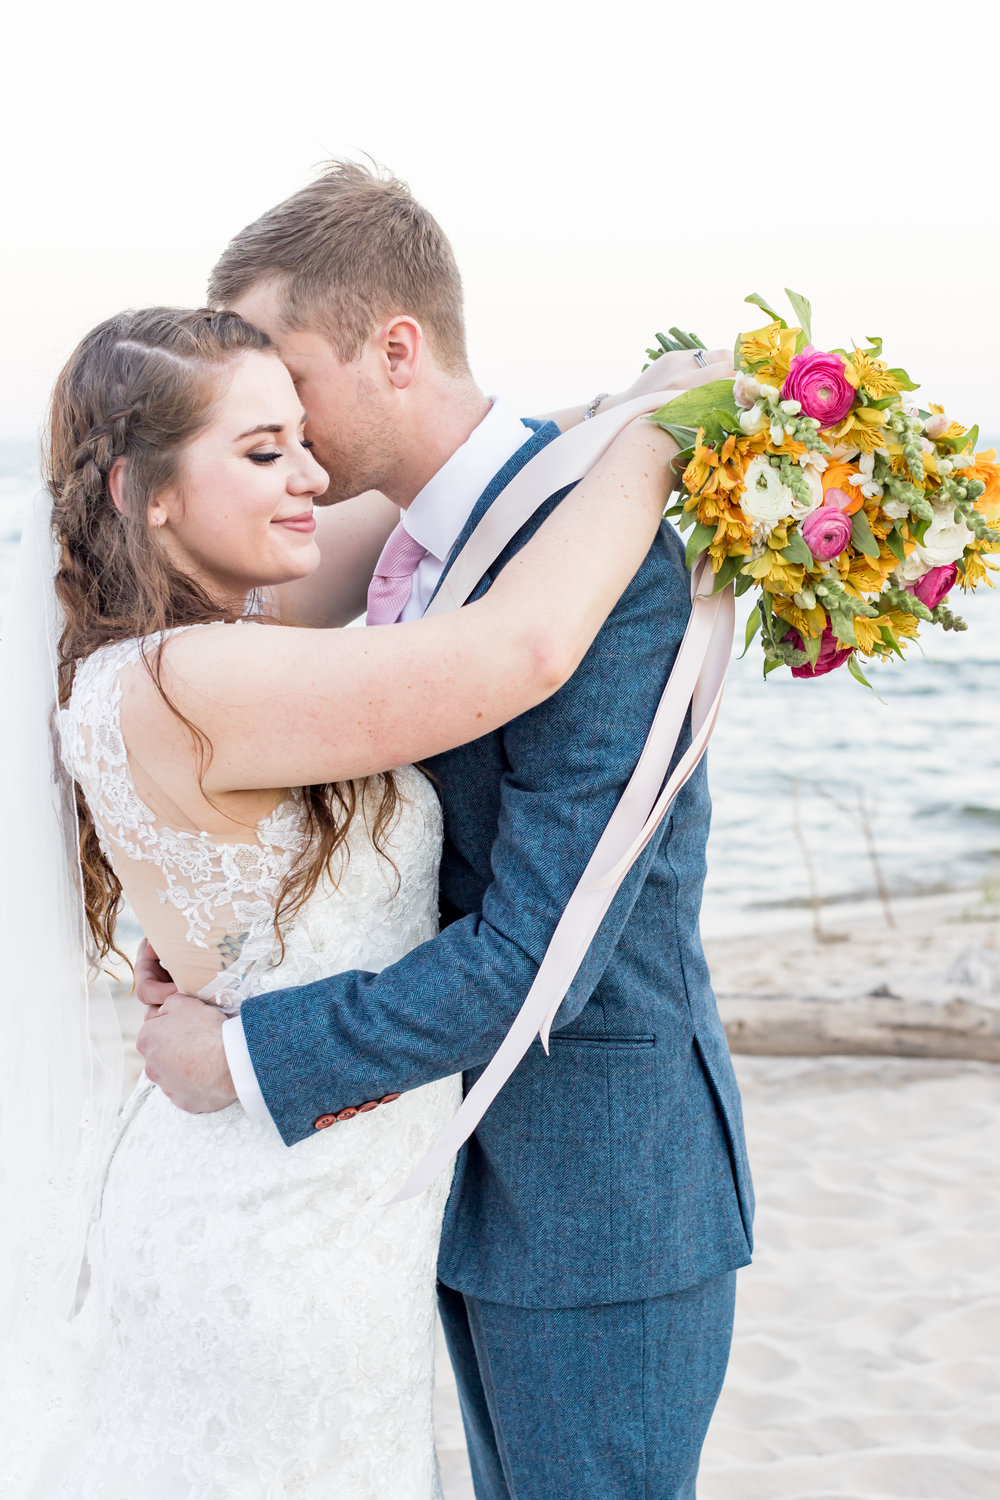 10 Reasons to Hire a Professional Photographer for Your Wedding